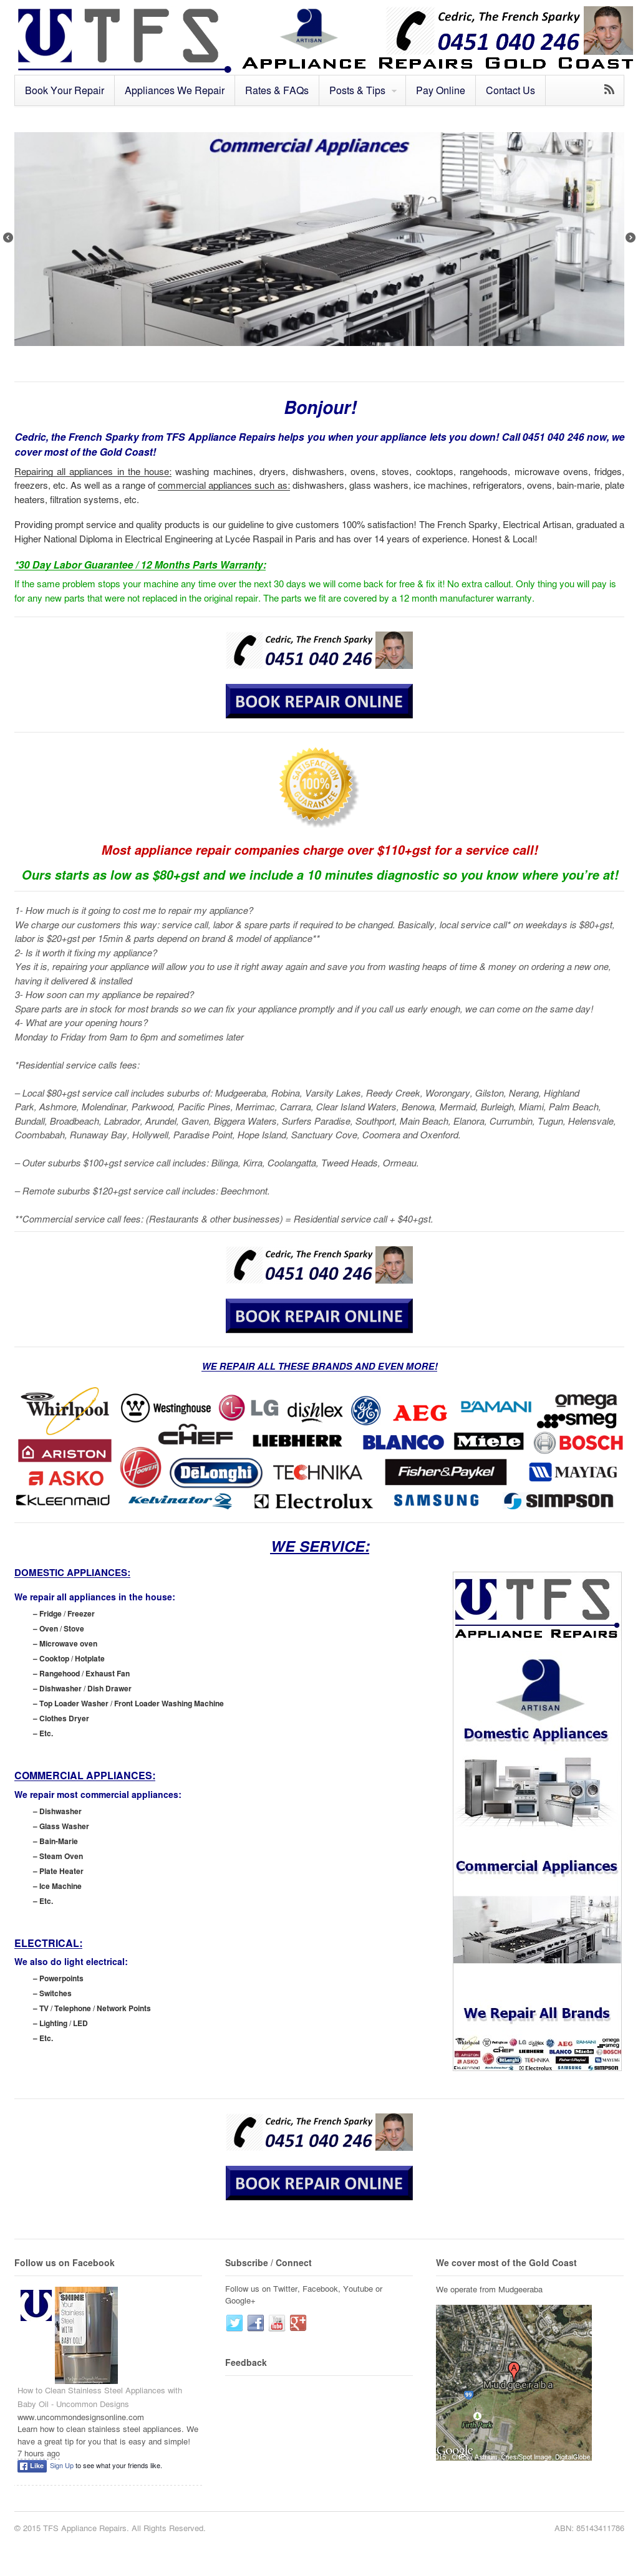 Tfs Appliance Repairs, Gold Coast Competitors, Revenue and Employees